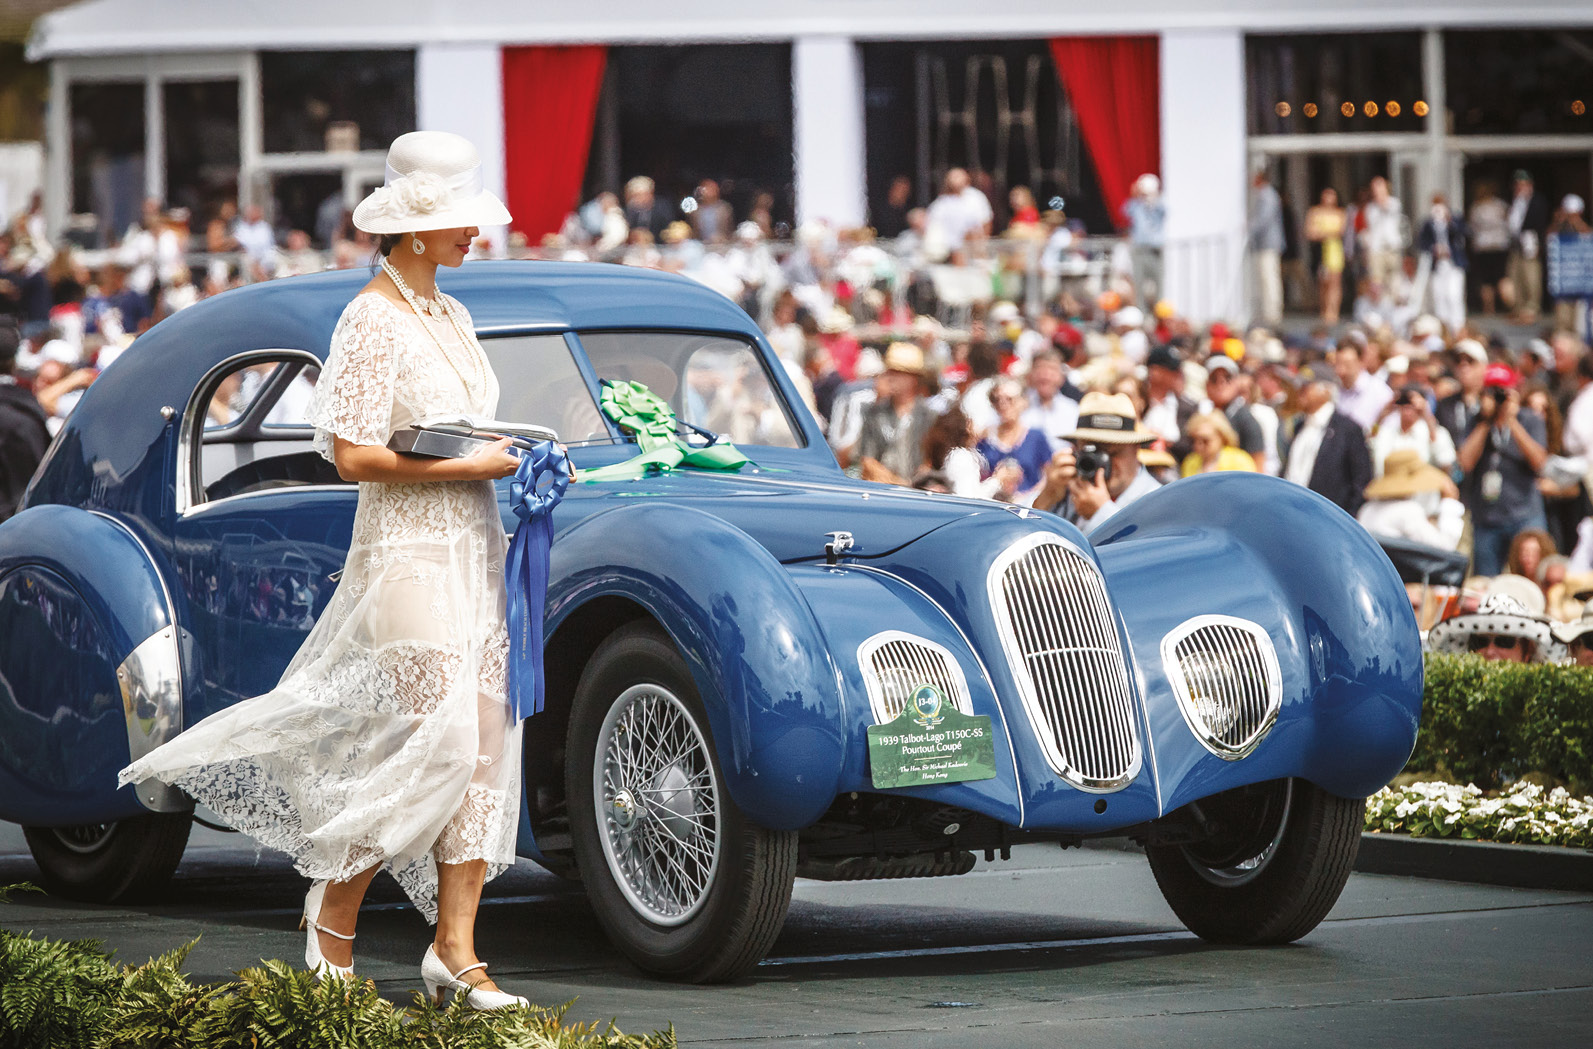 On the Pebble Beach ramp where concours winners receive their awards